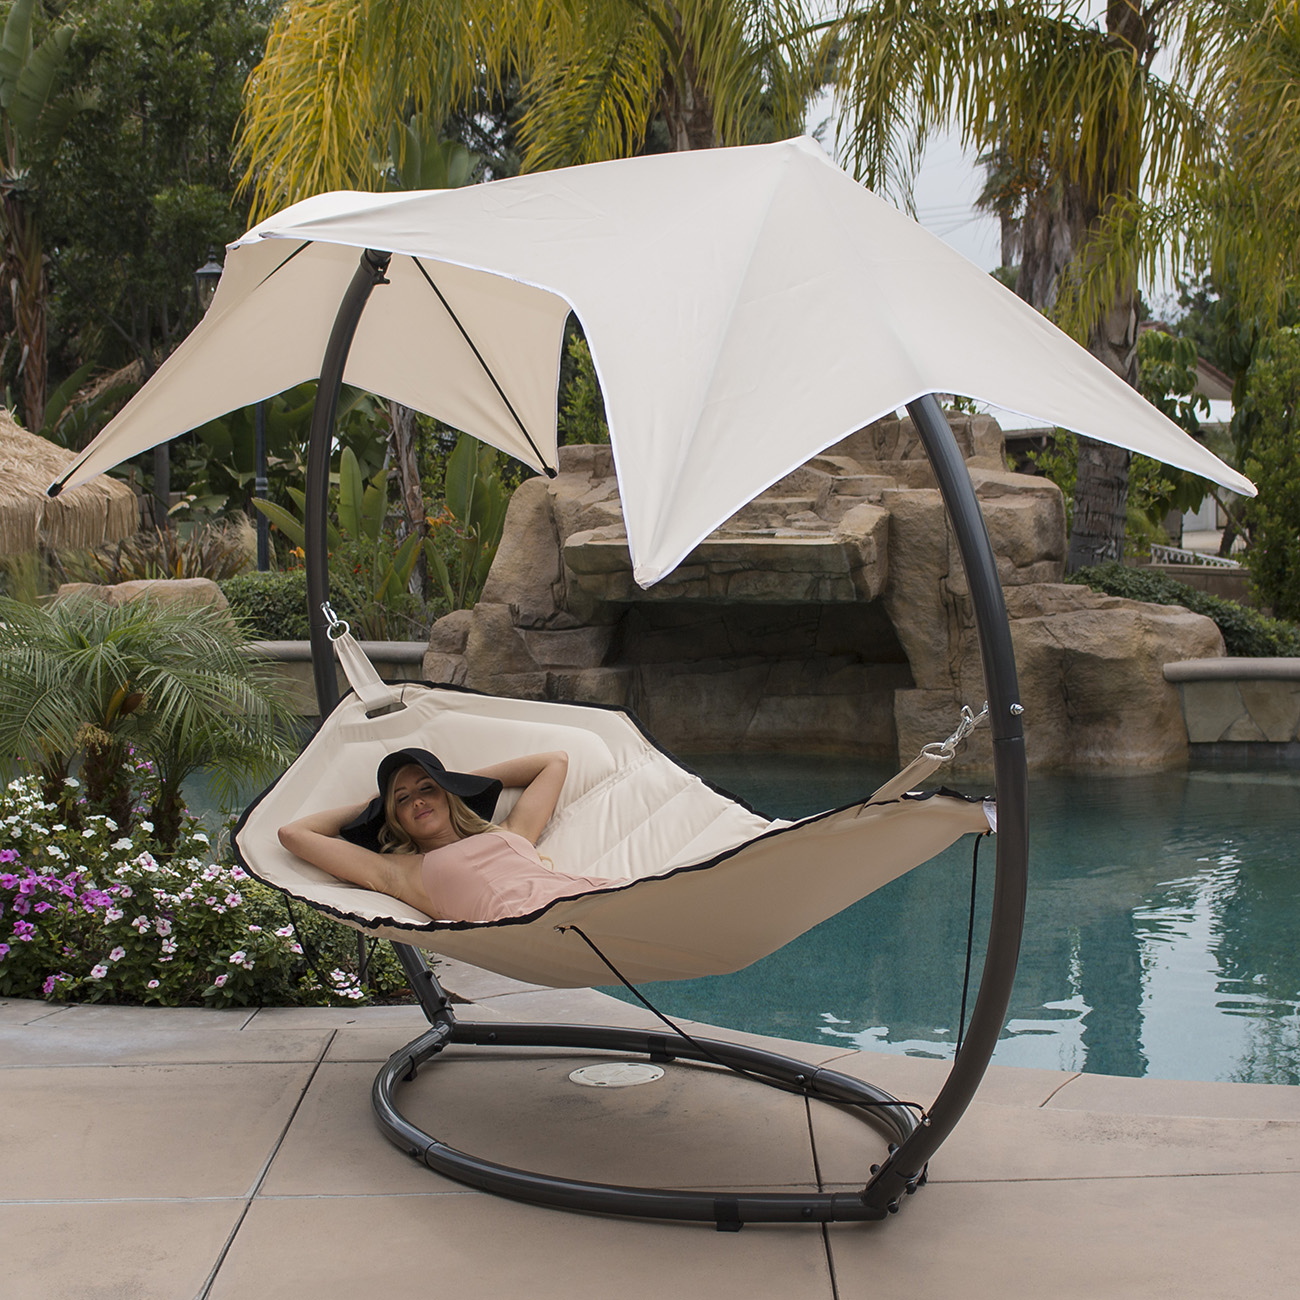 Patio Hammock: Patio Hammock W/ Sunroof Canopy Outdoor Swing Backyard